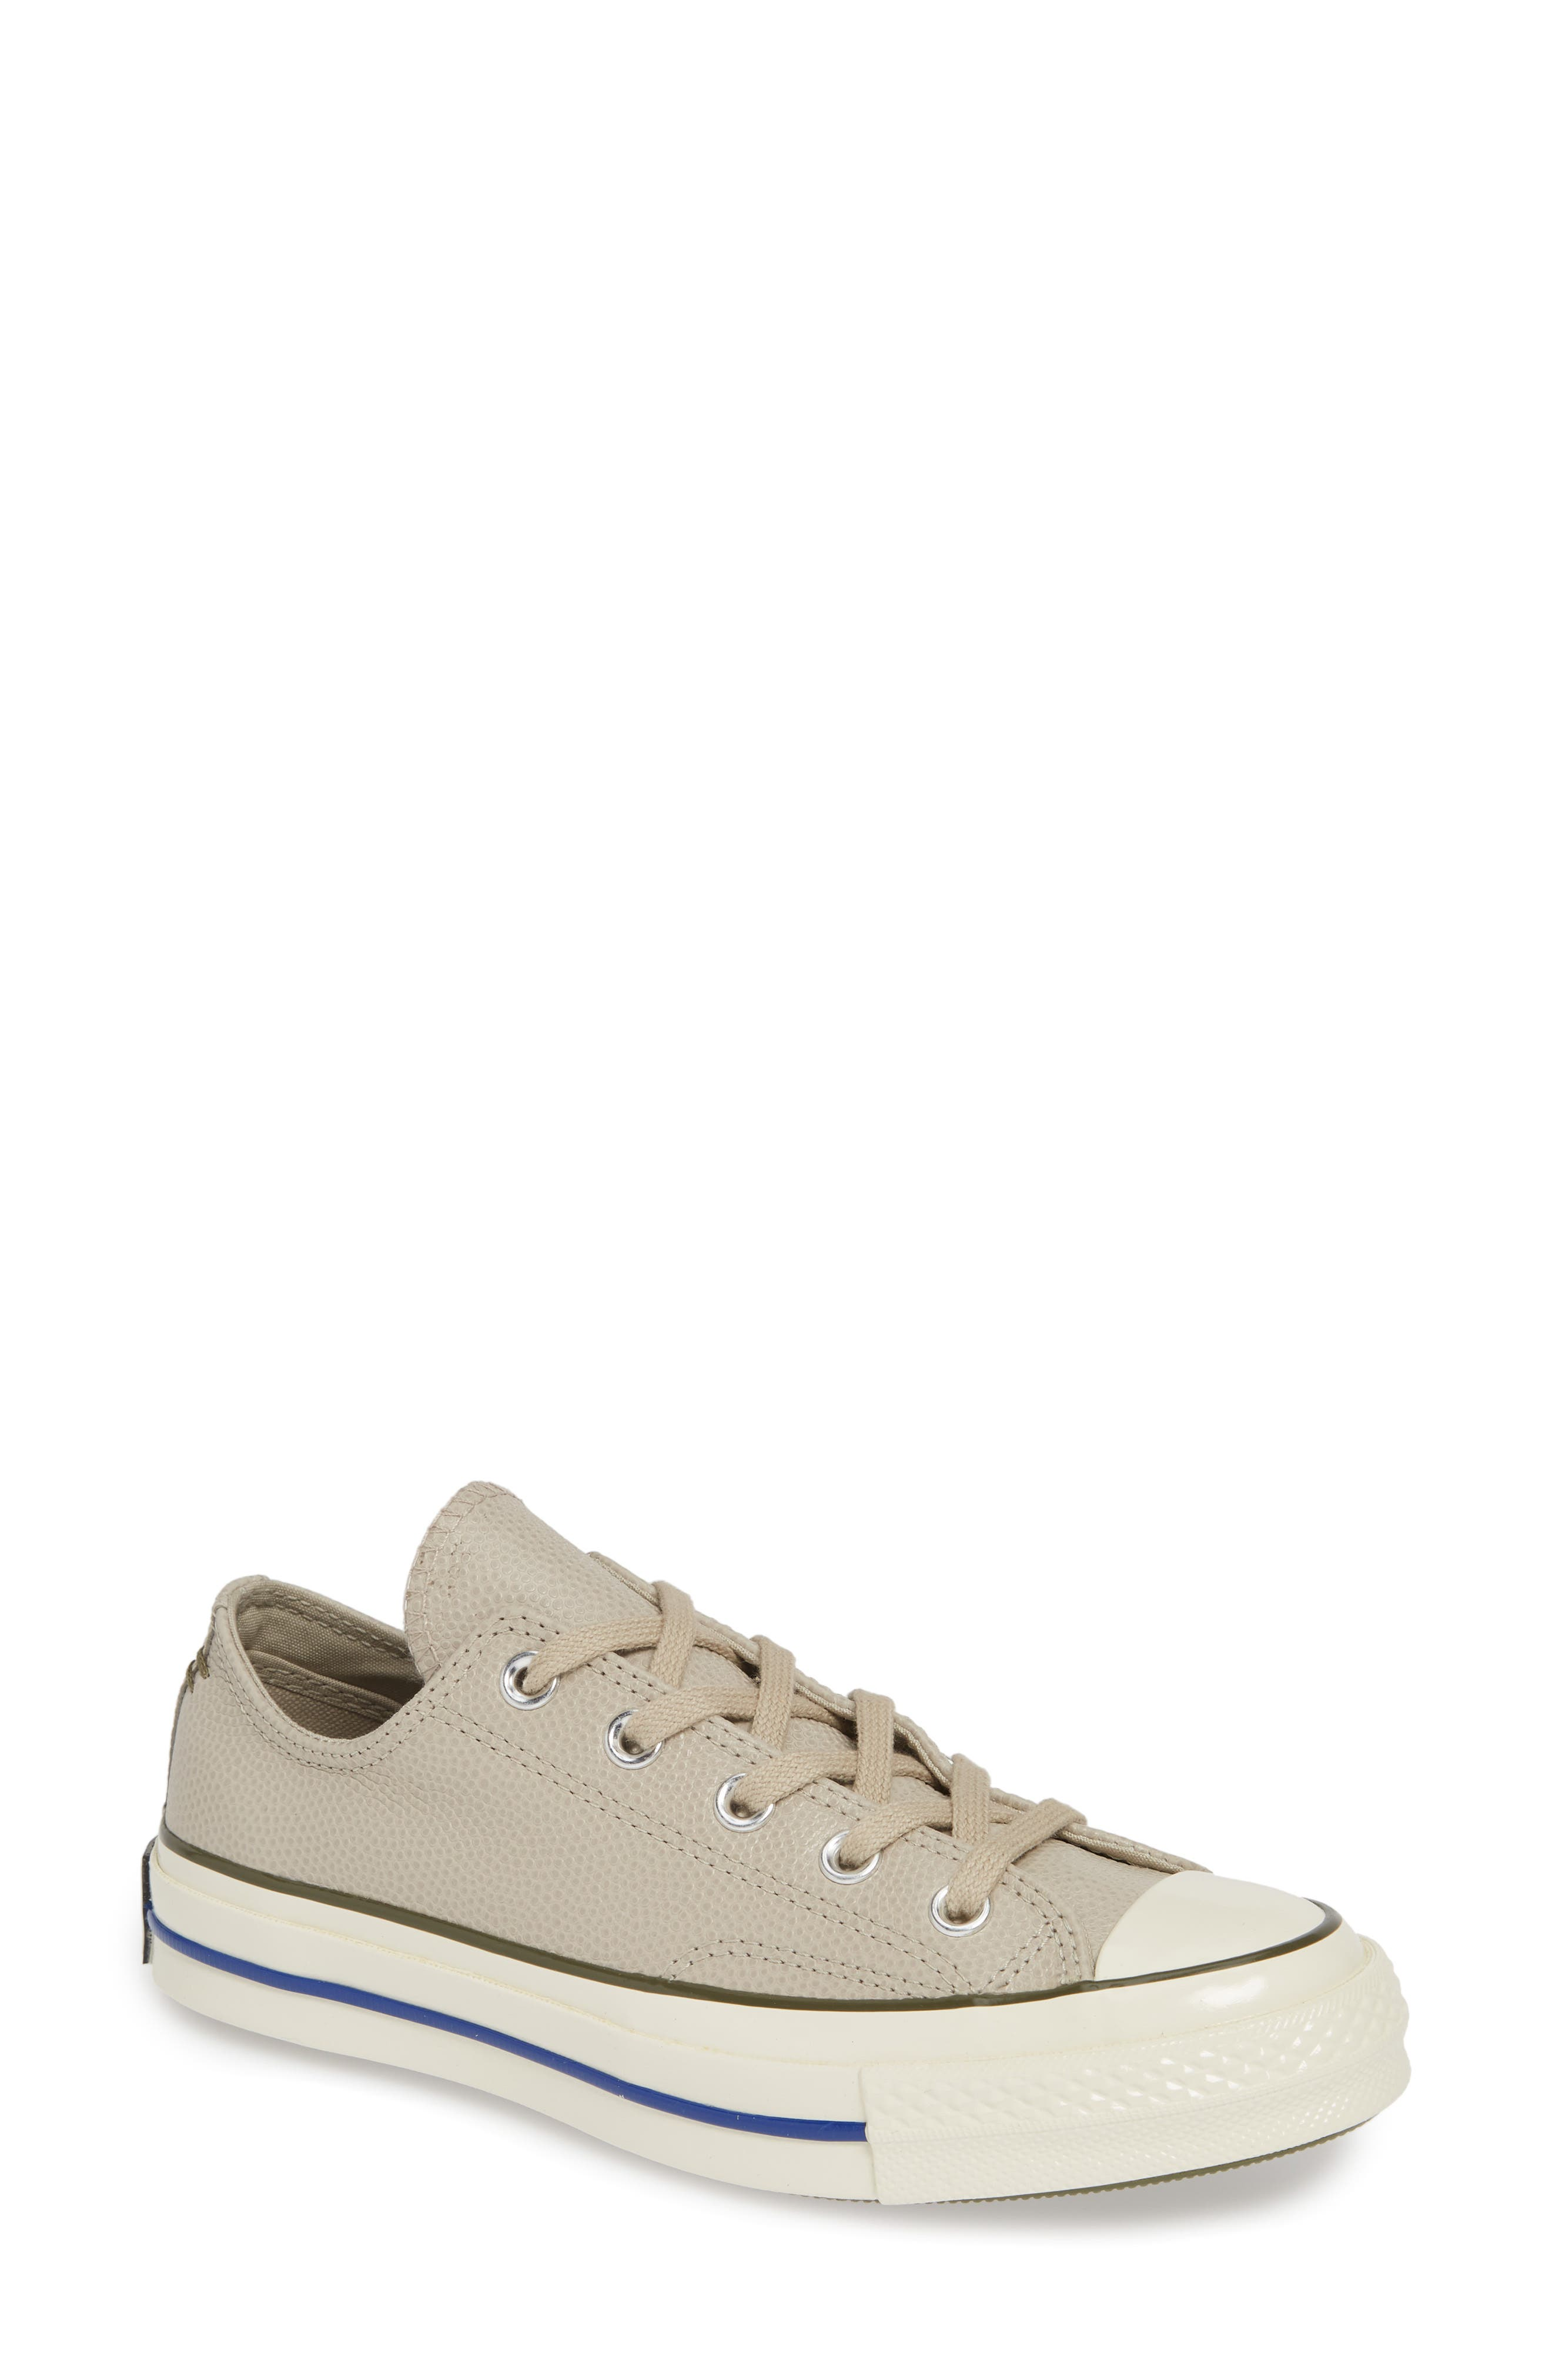 CONVERSE, Chuck Taylor<sup>®</sup> All Star<sup>®</sup> Chuck 70 Ox Leather Sneaker, Main thumbnail 1, color, PAPYRUS/ FIELD SURPLUS/ EGRET